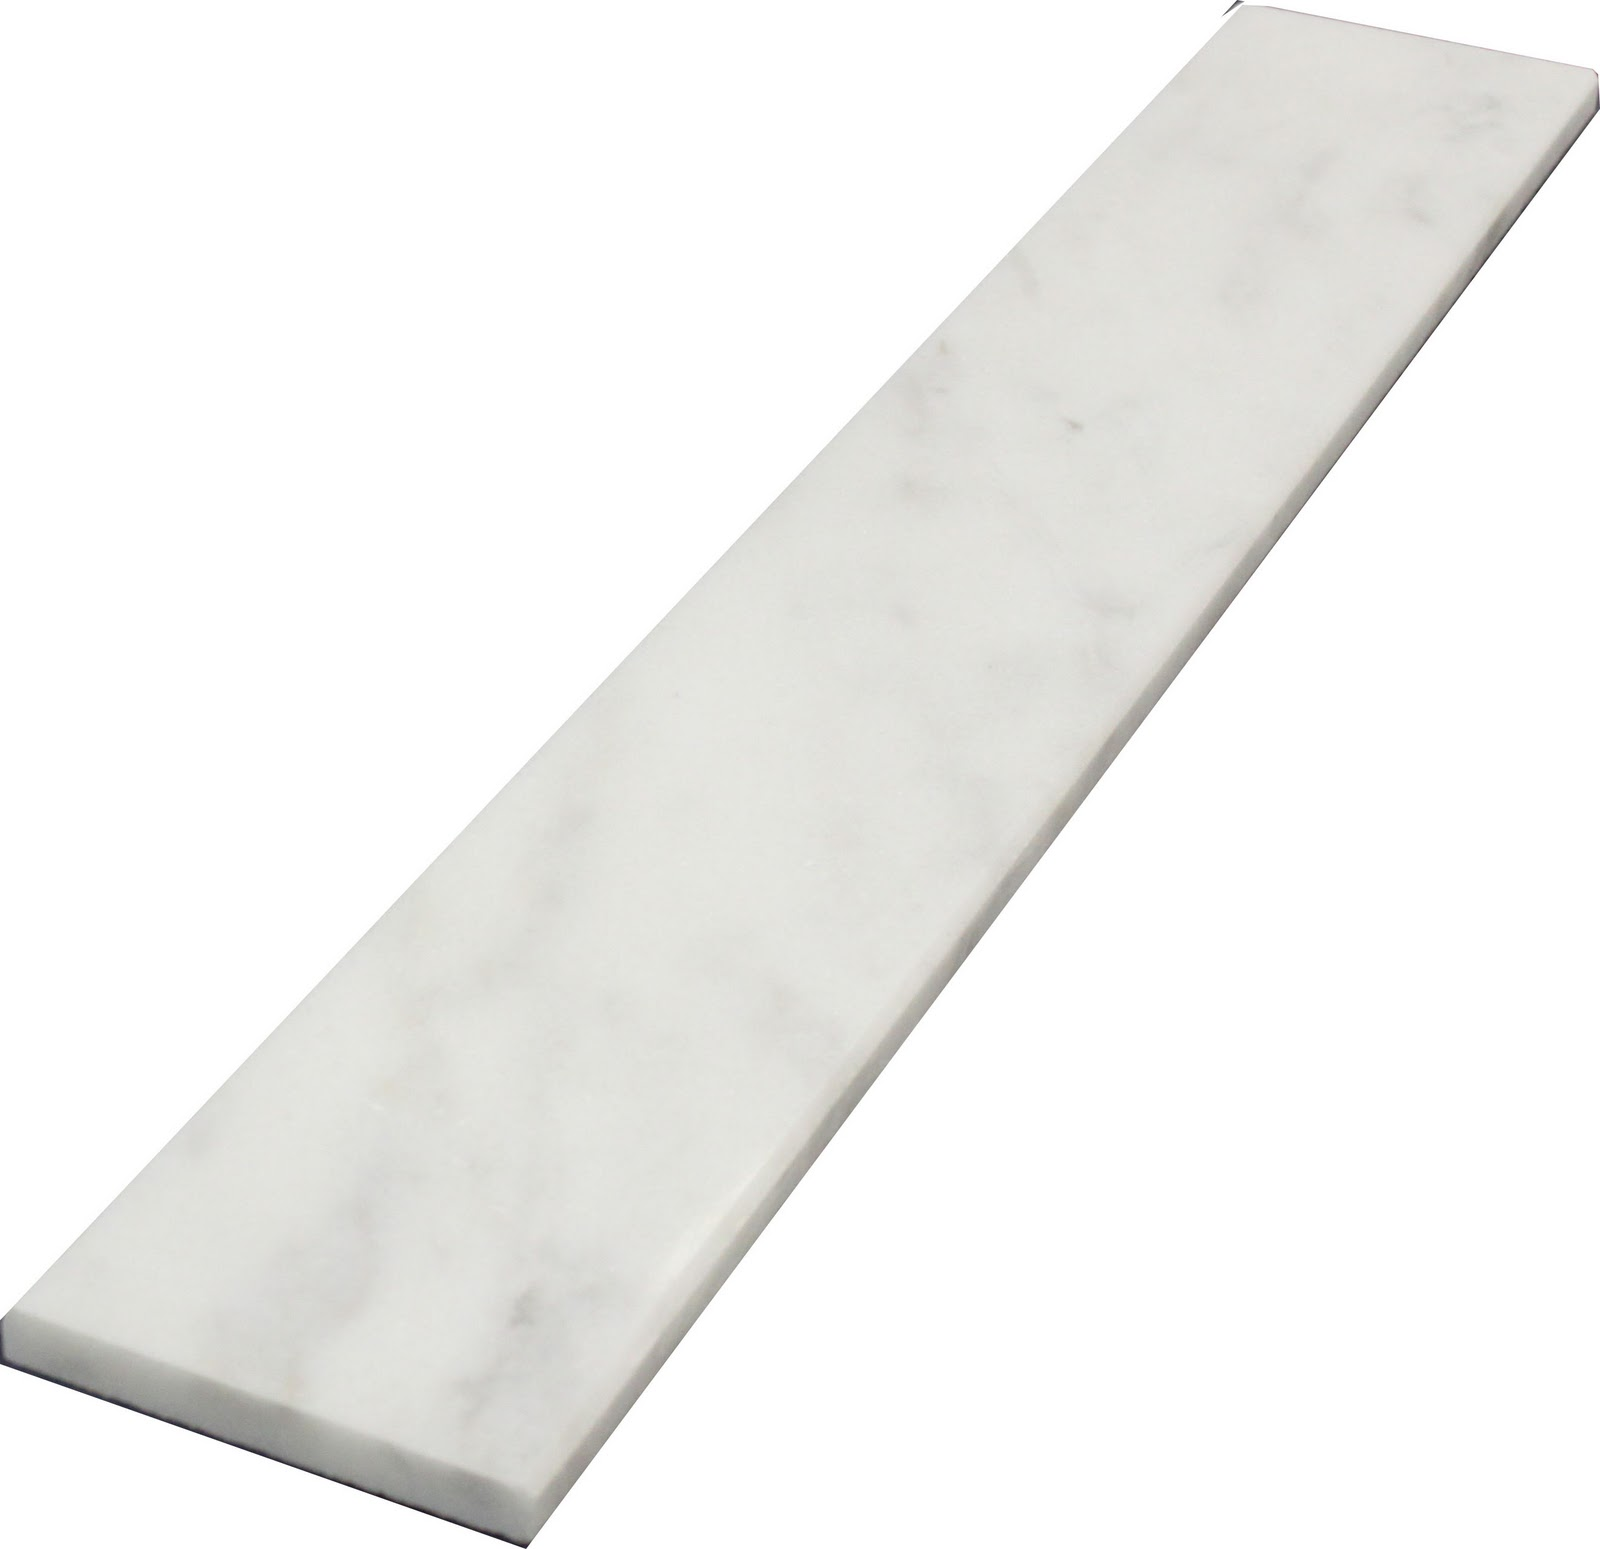 Carrara Threshold: Marble Thresholds: Carrara Marble Thresholds